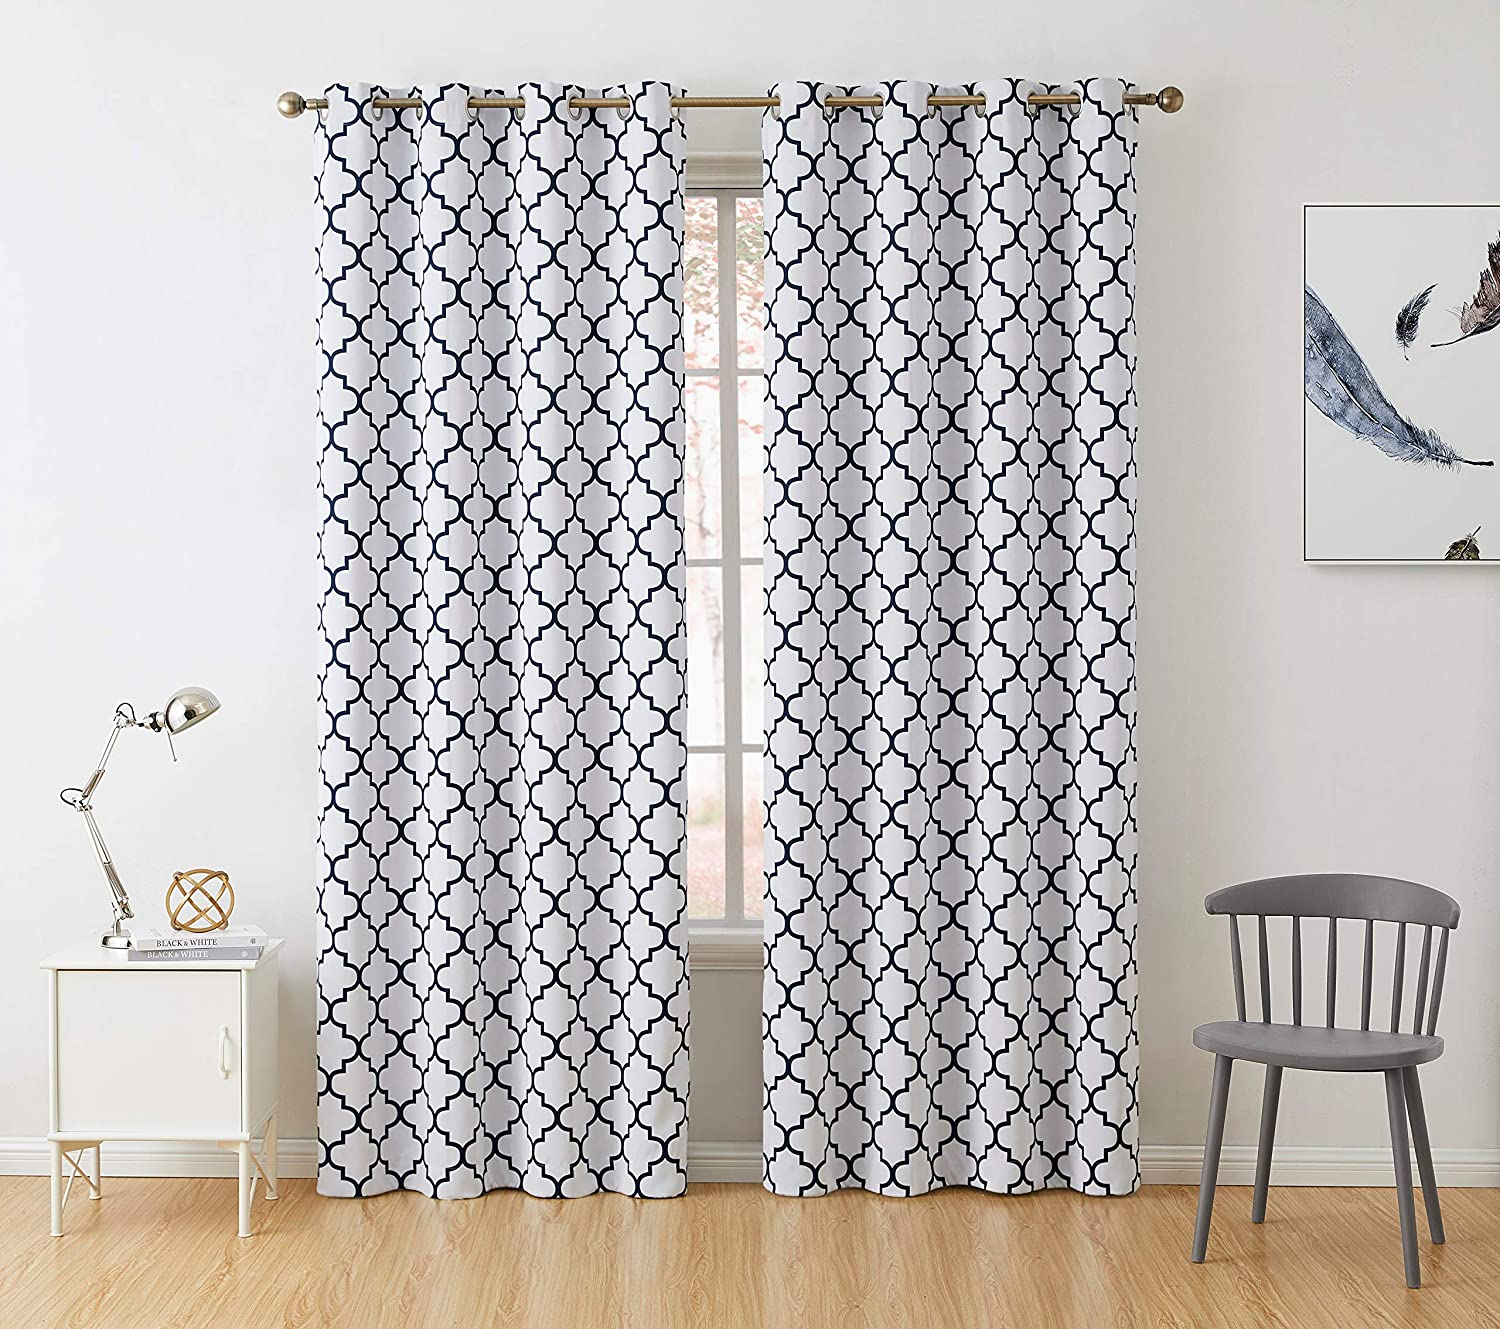 """HLC.ME Lattice Print Thermal Insulated Blackout Room Darkening Window Curtains for Bedroom - Platinum White & Navy Blue - 52"""" W x 84"""" L - Pair"""